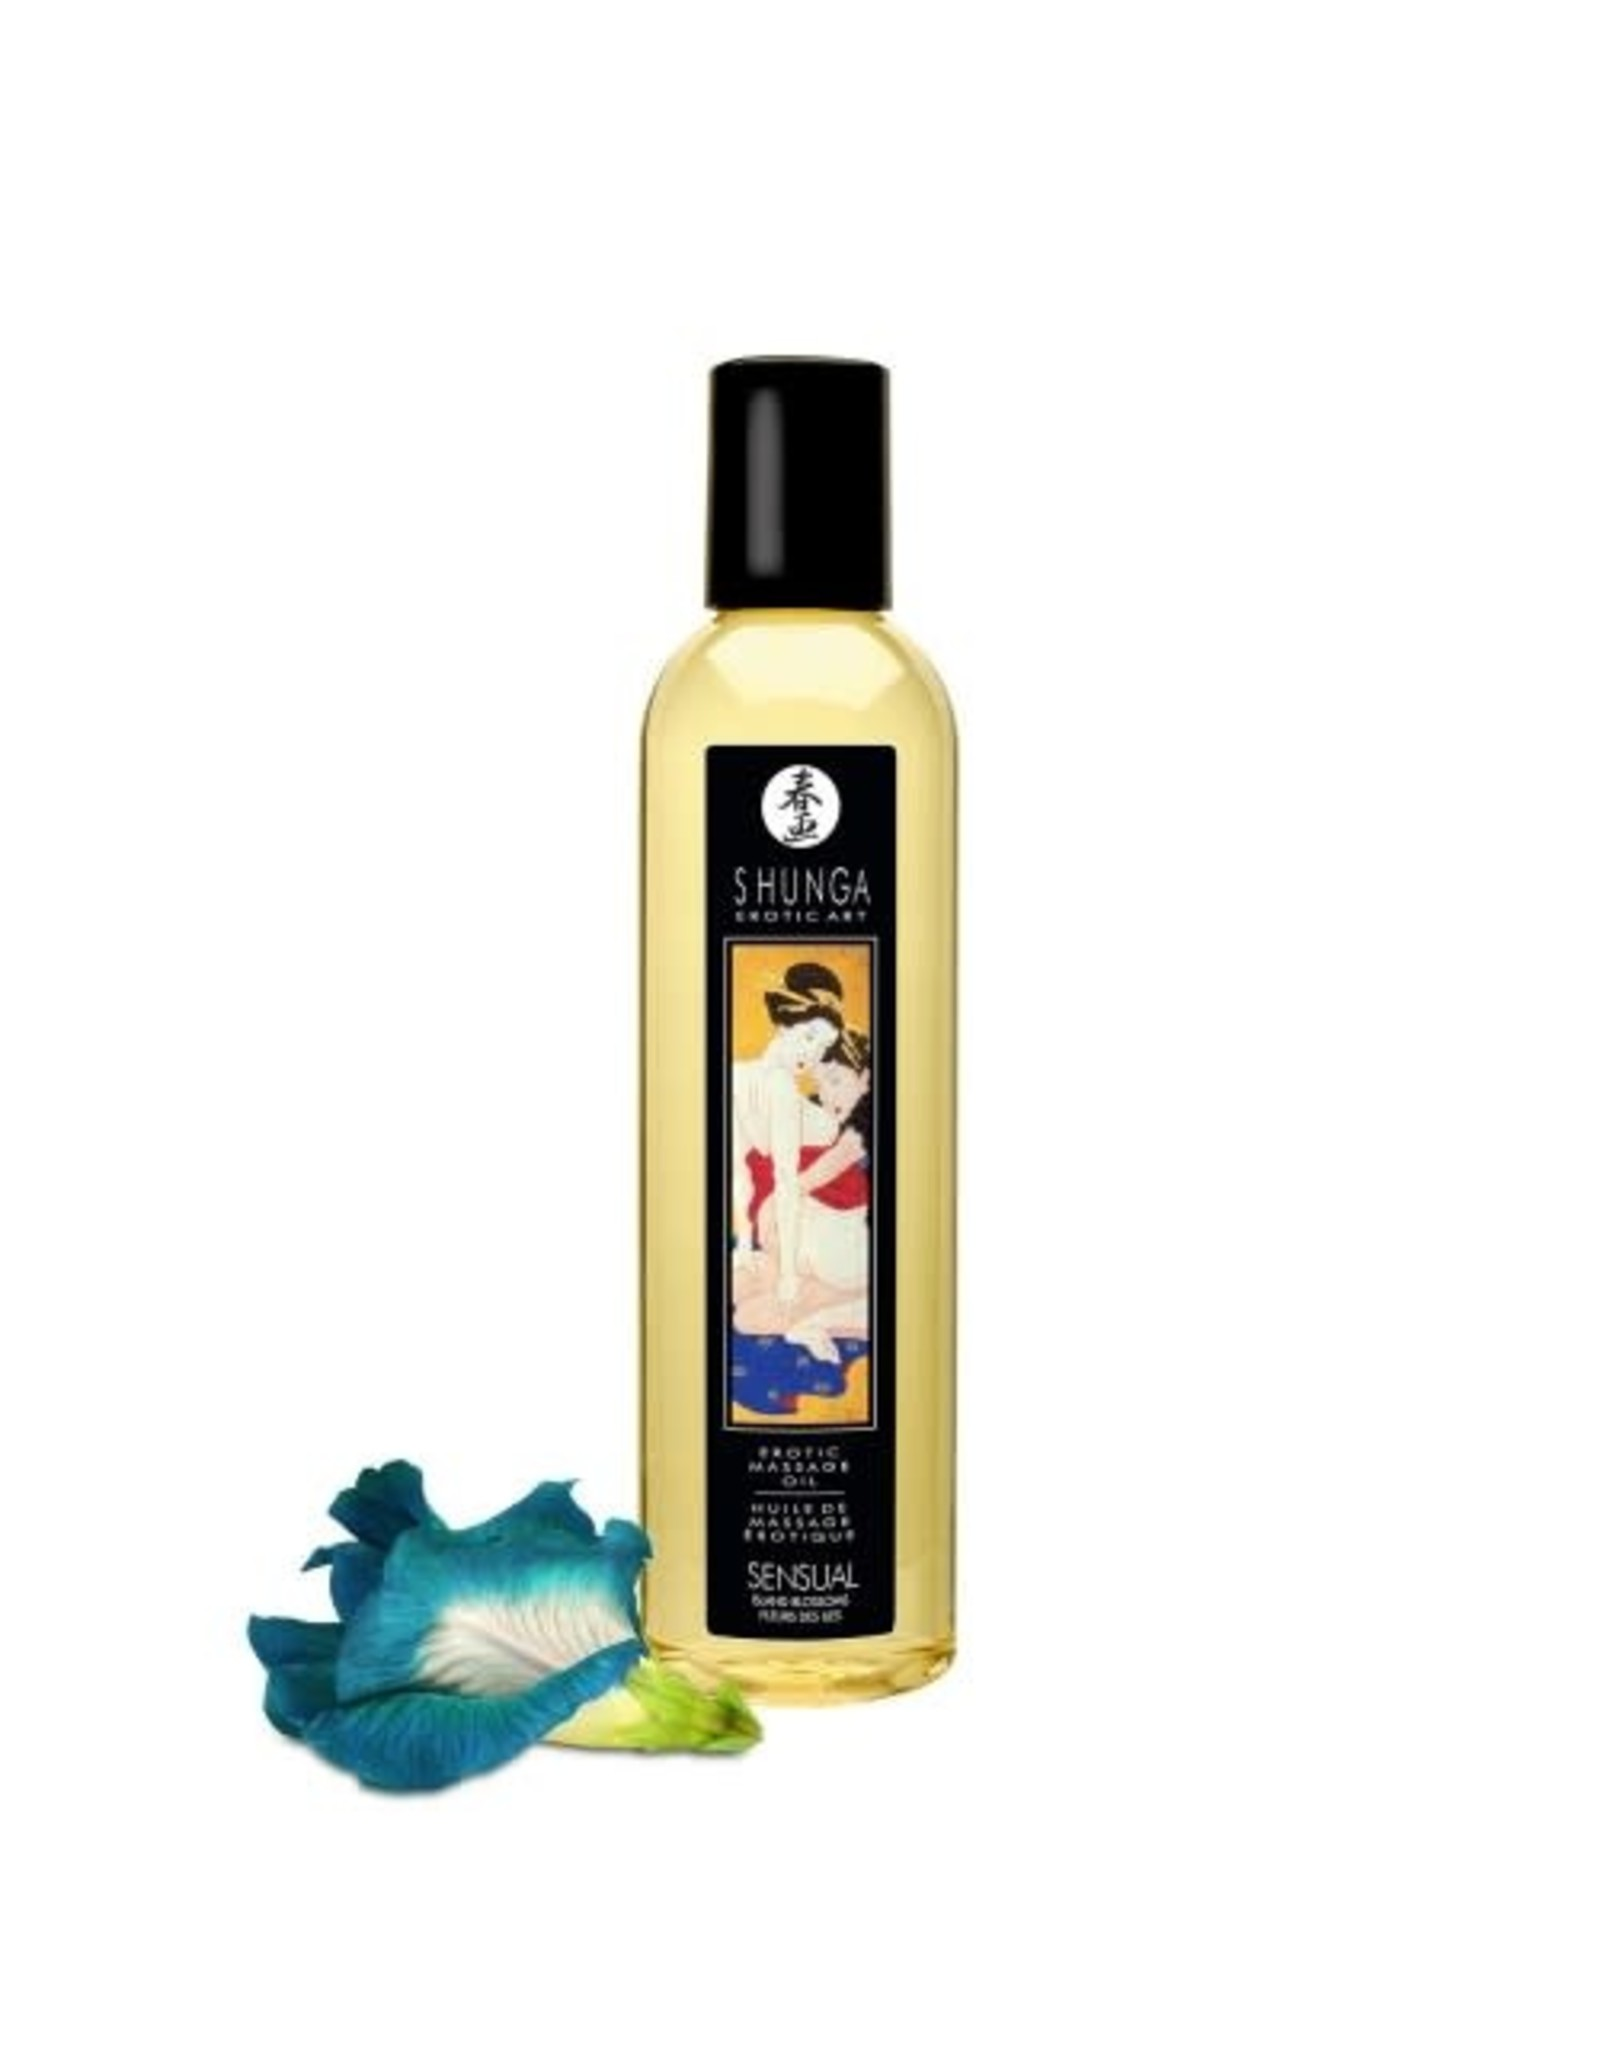 Shunga Shunga Erotic Massage Oil Sensual